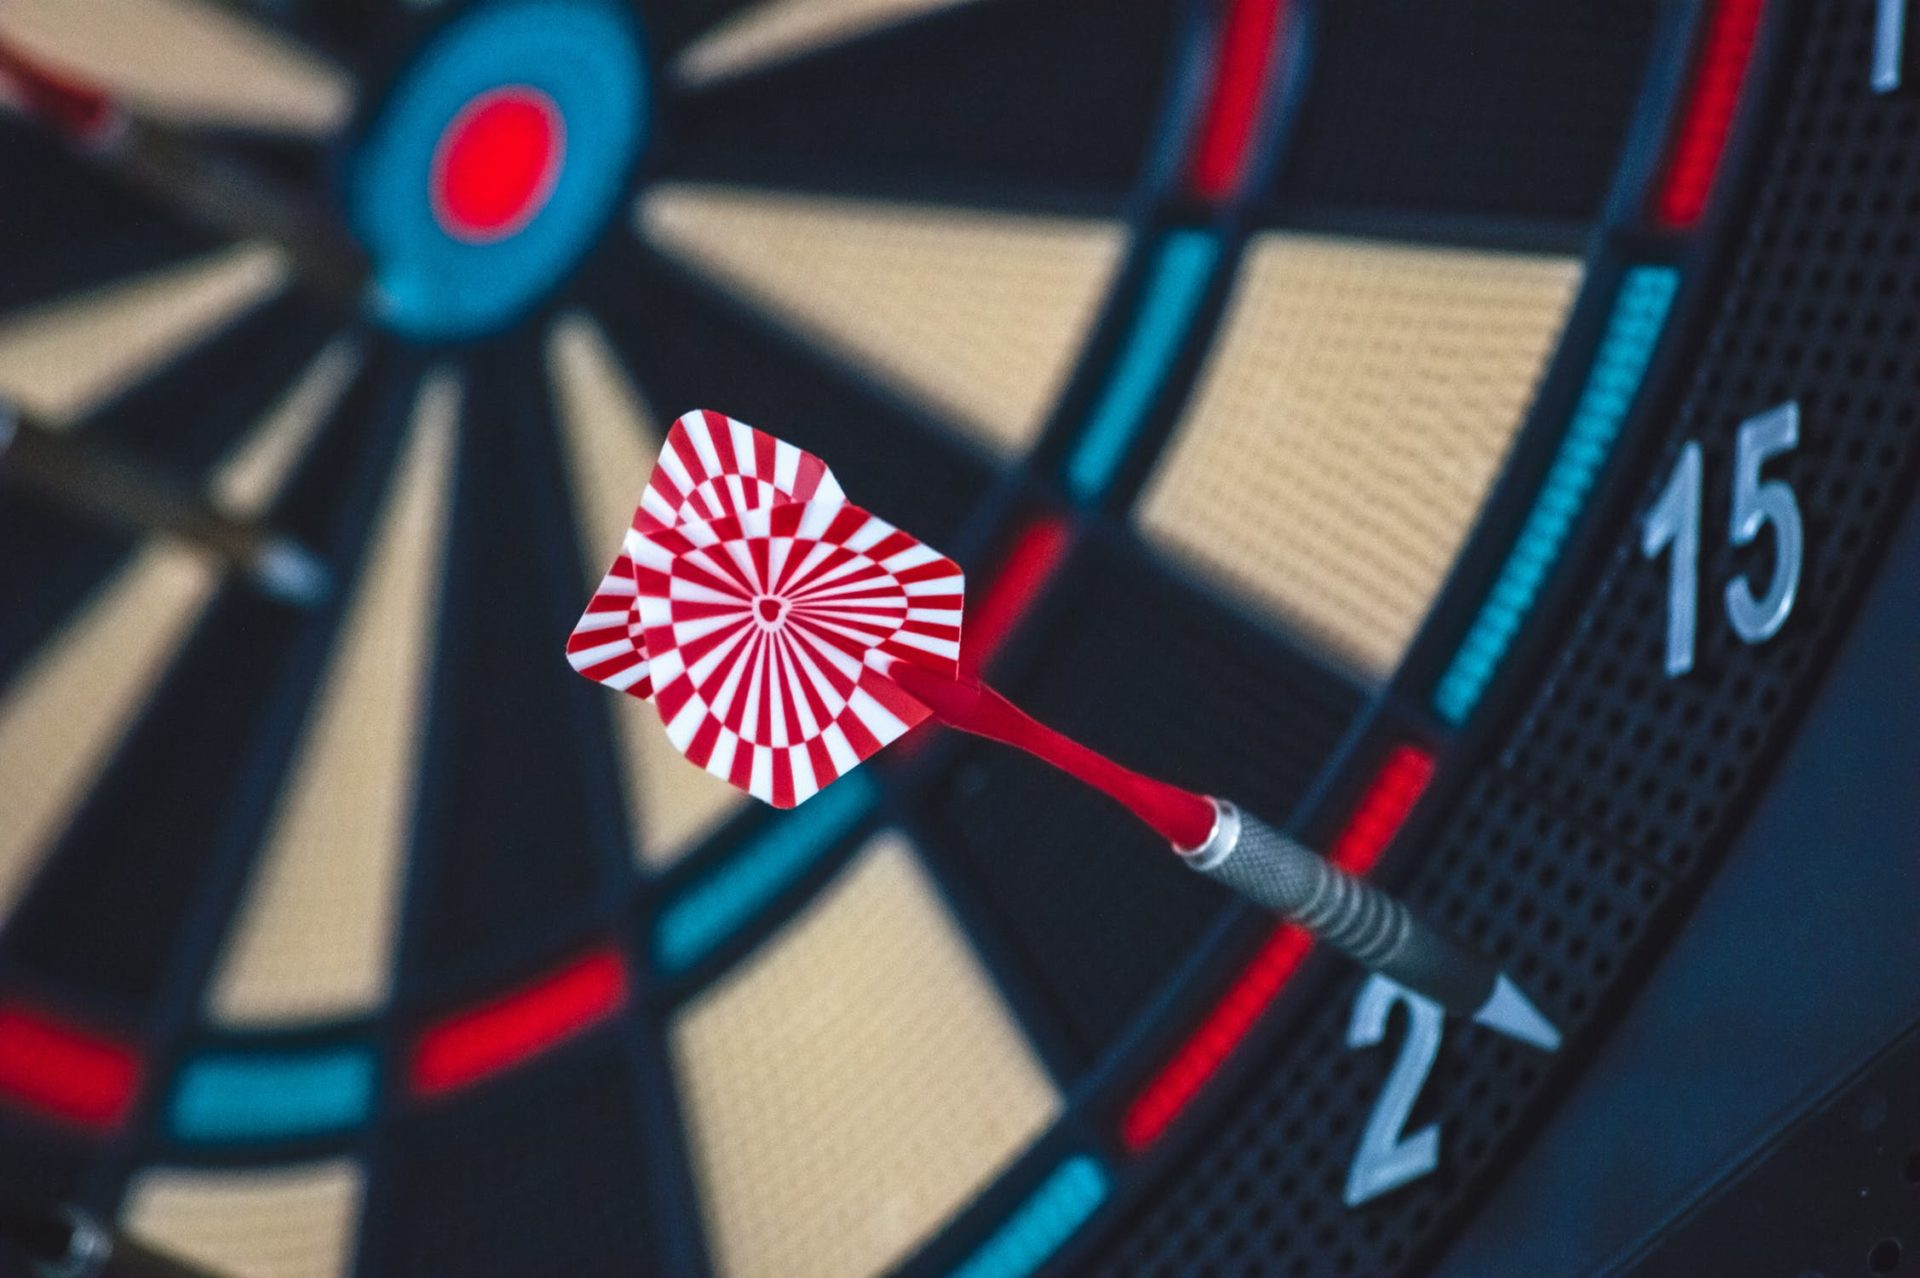 Darts board | hitting those marketing targets